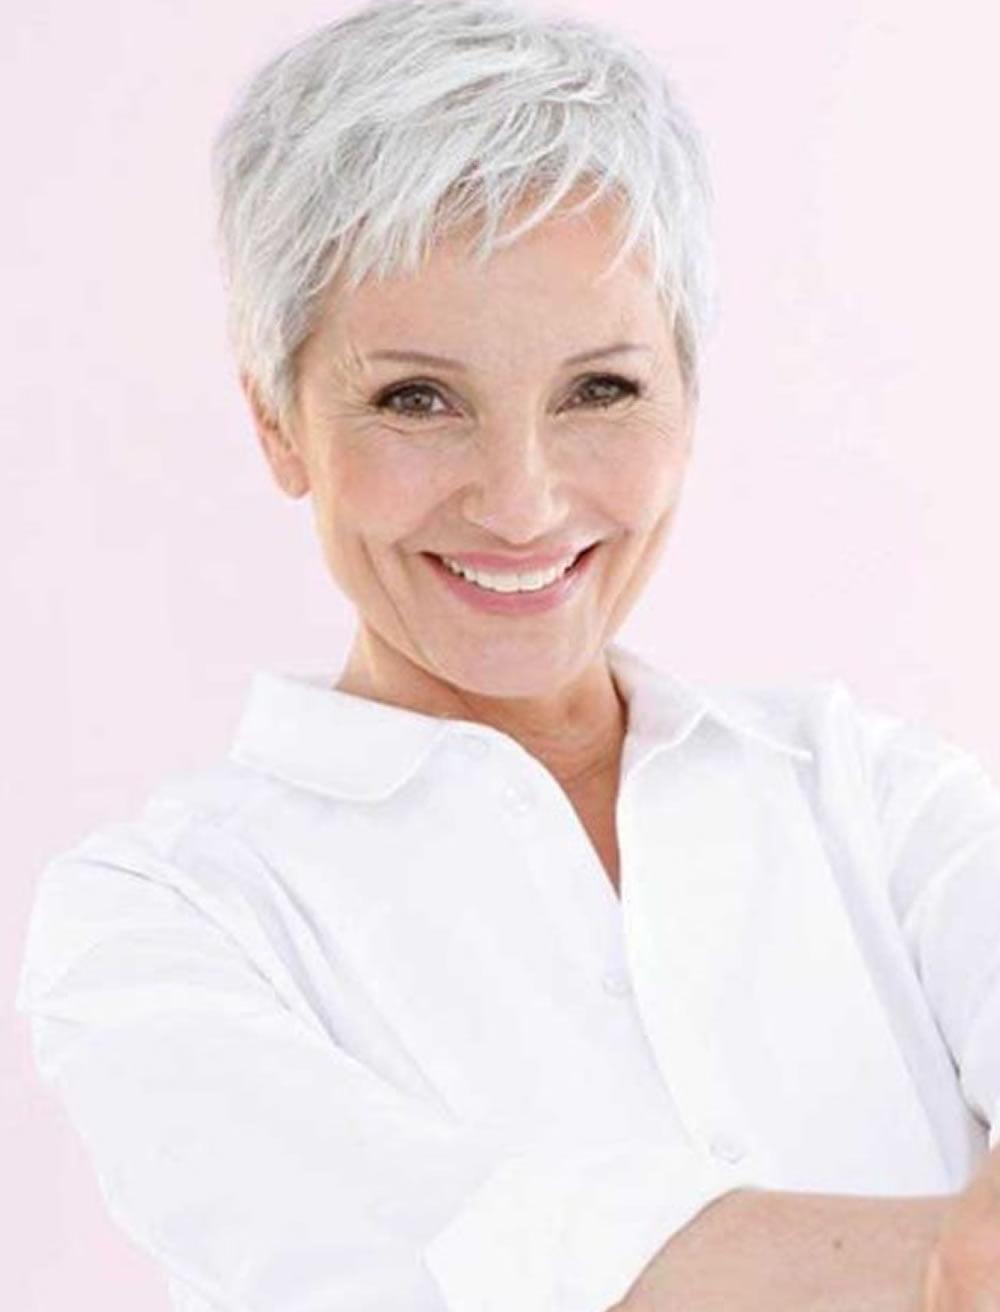 short pixie haircuts for older women 33 top pixie hairstyles for pixie 4348 | Images of Pixie Haircuts for Older Women